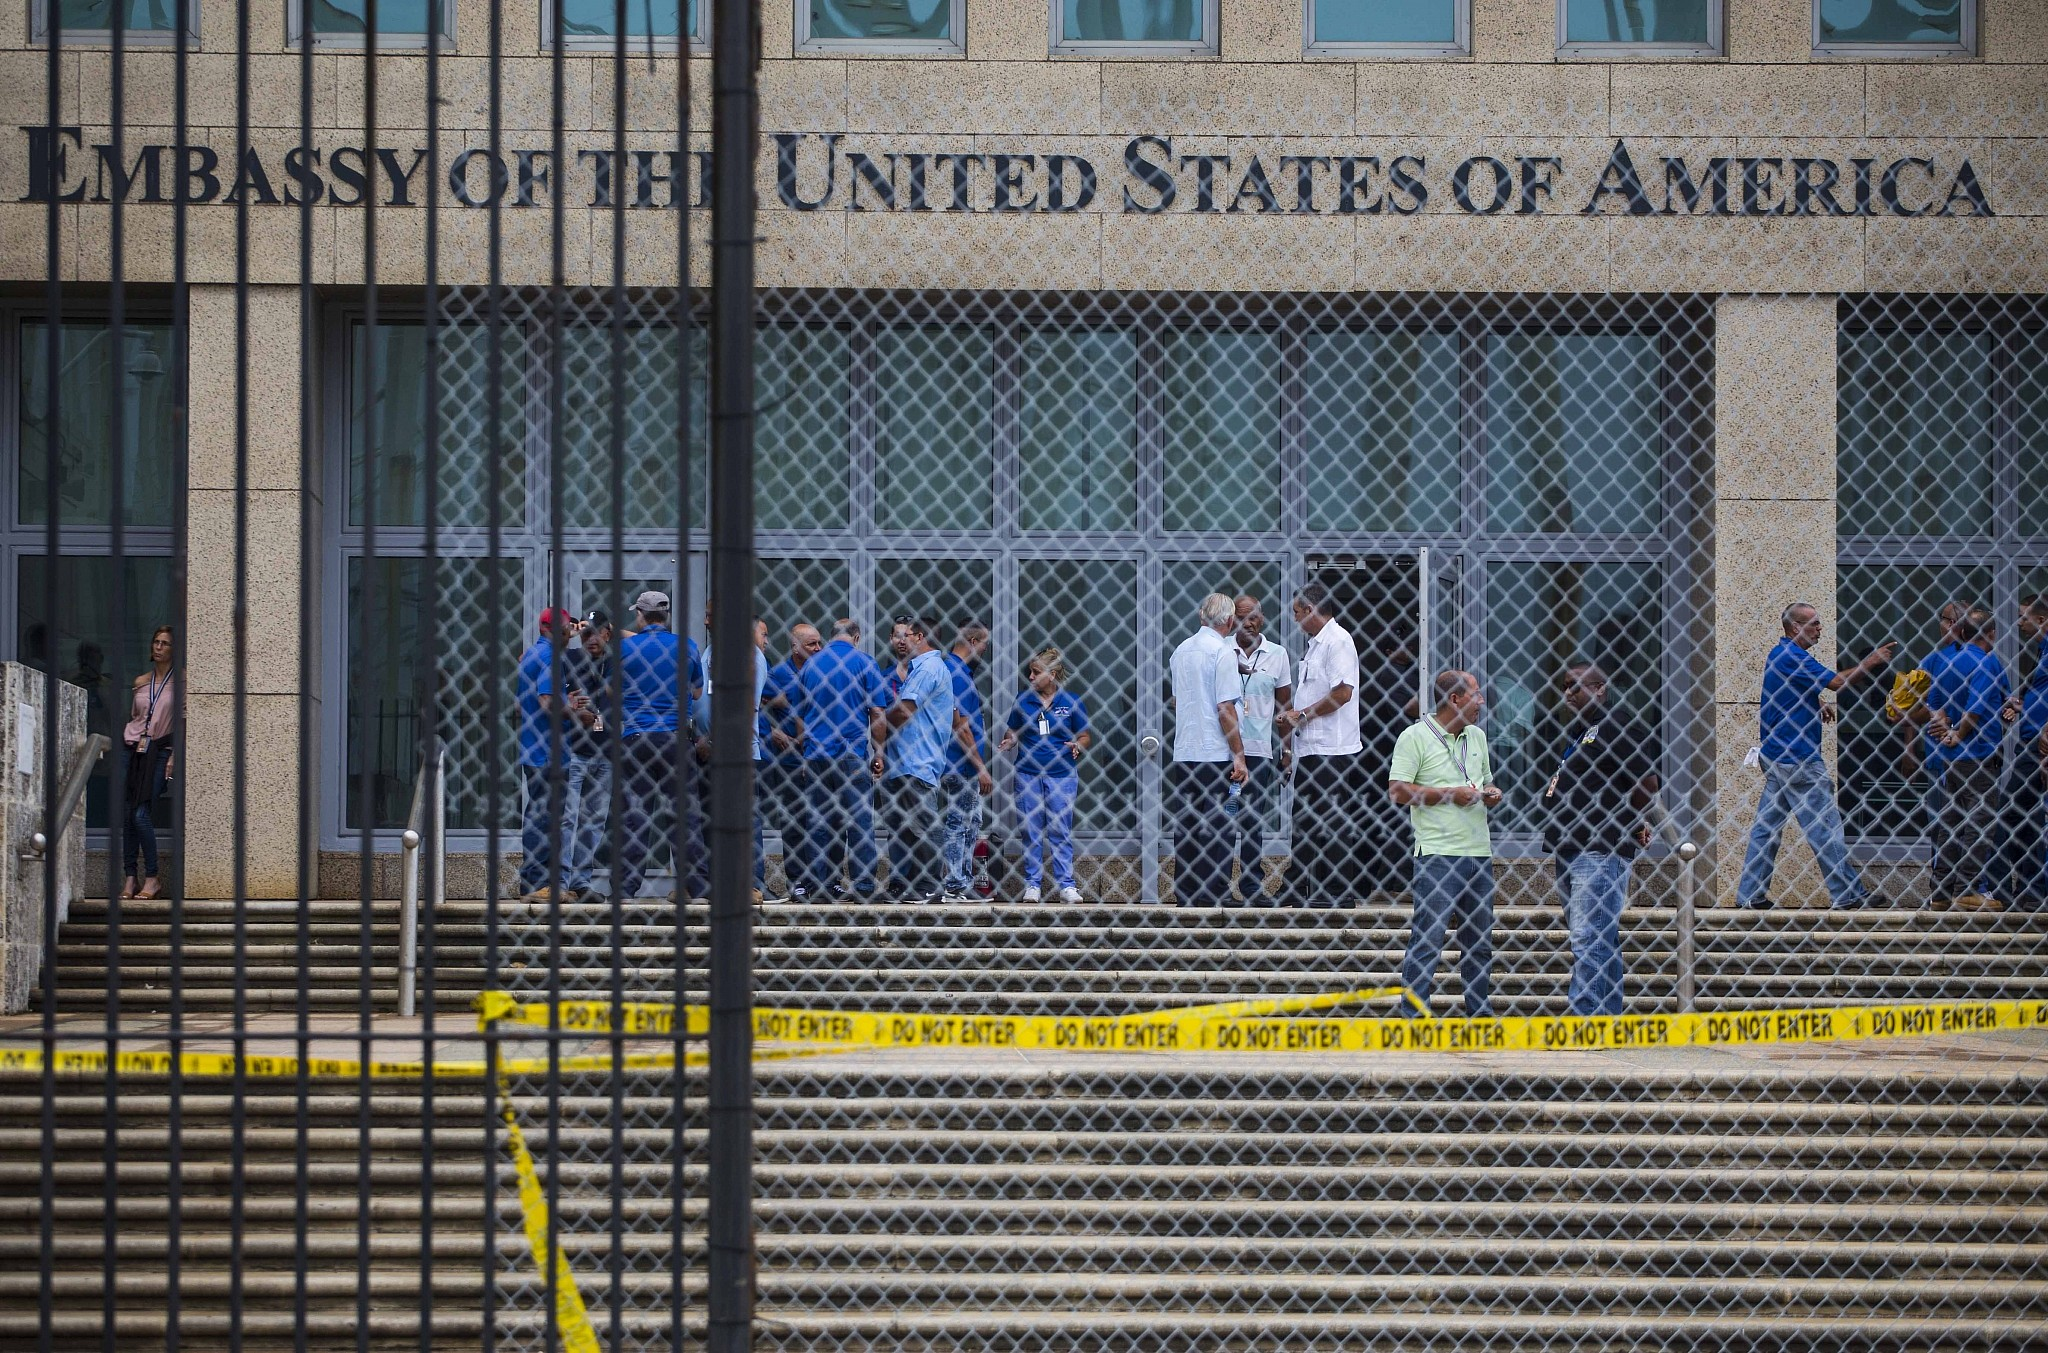 United States cuts embassy staff in Cuba after mystery attacks